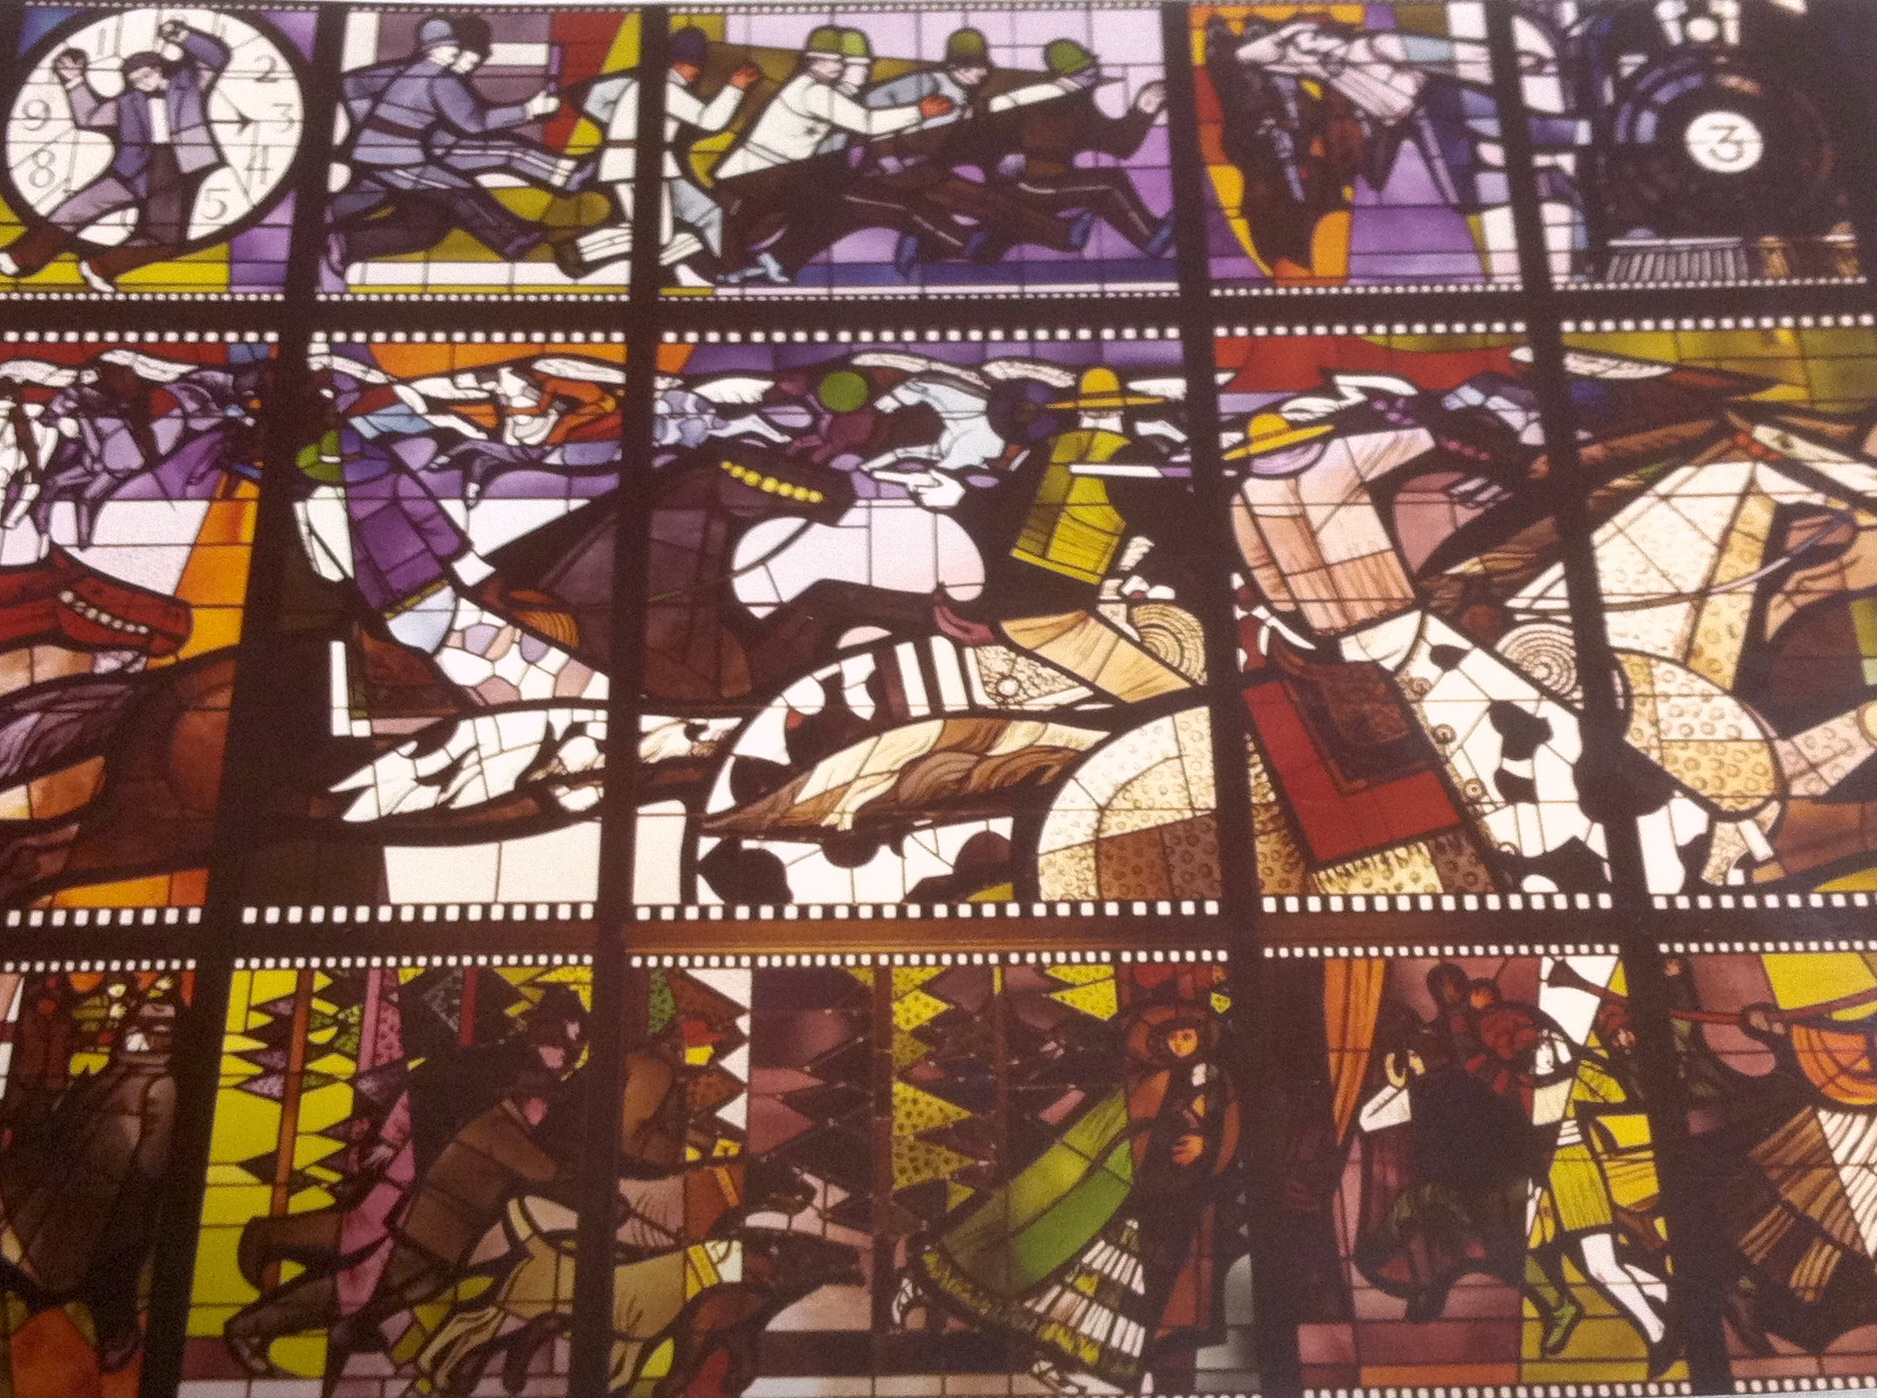 Sue Hertel and John Wallis and Associates, Hollywood branch stained glass at installation, 1968